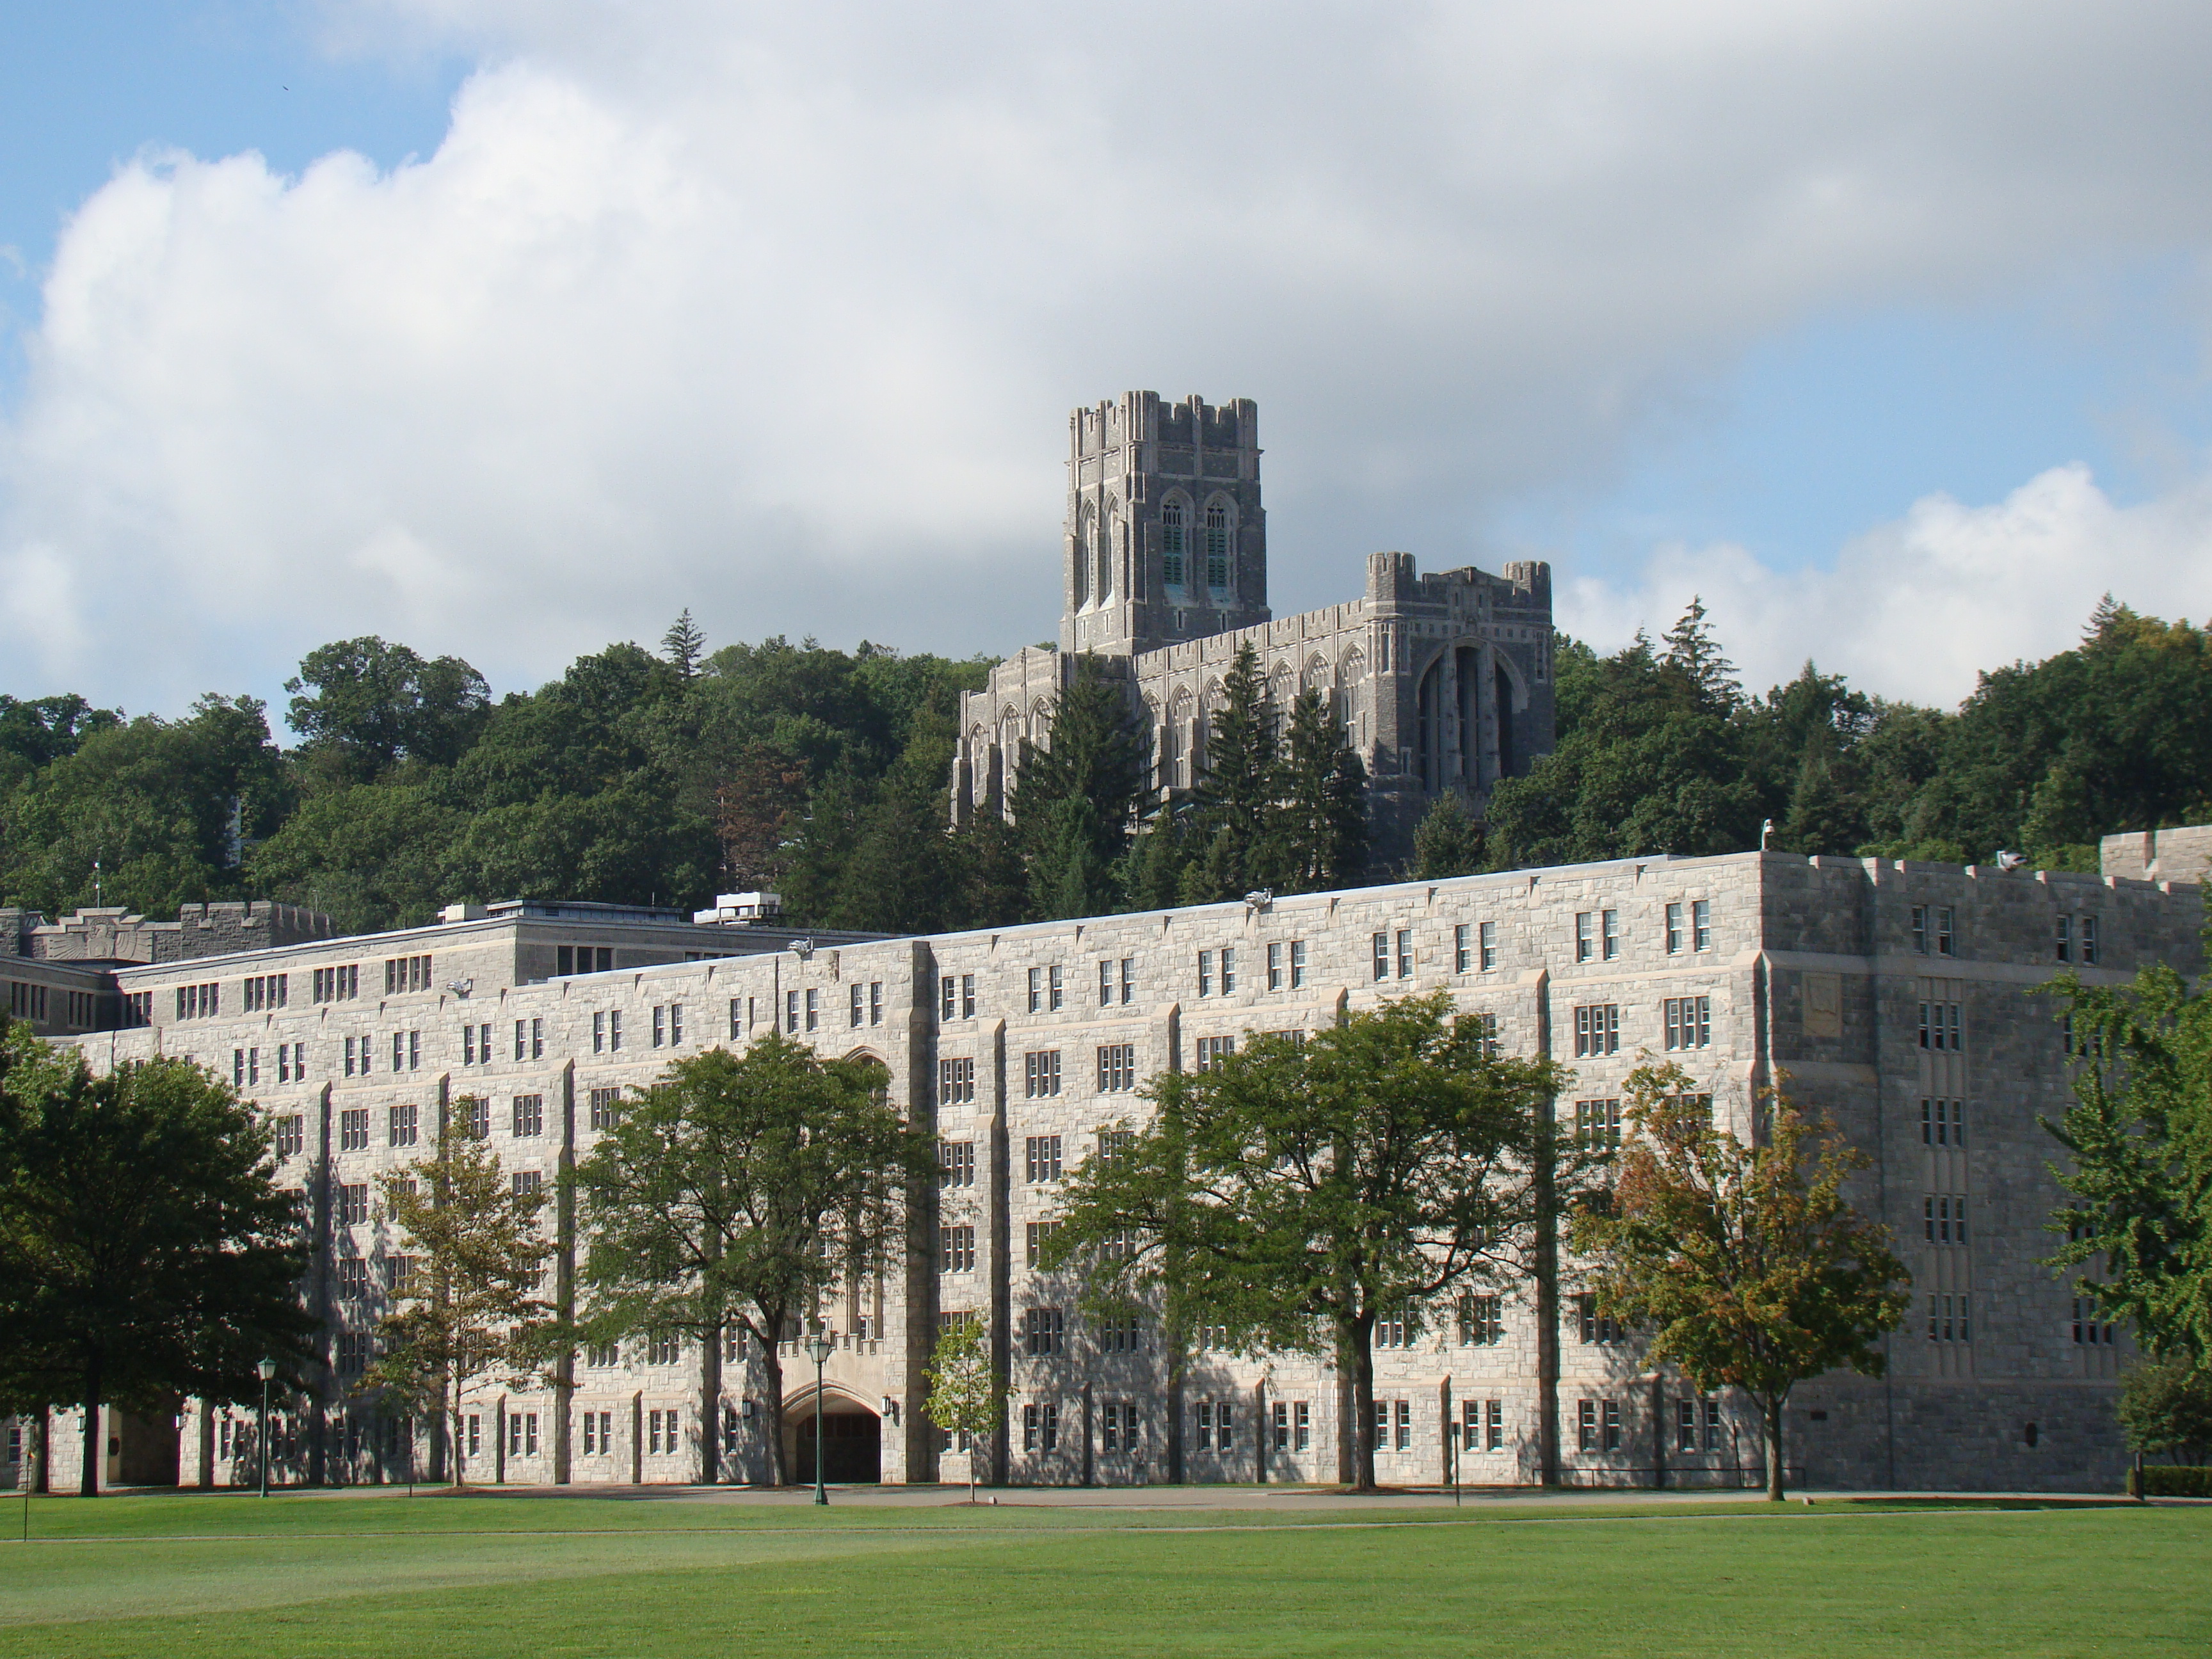 dating at west point My boyfriend was a cadet at west point he is now an officer and i am enlisted if one in the relationship is becoming an officer then the couple must marry before that person becomes an officer.